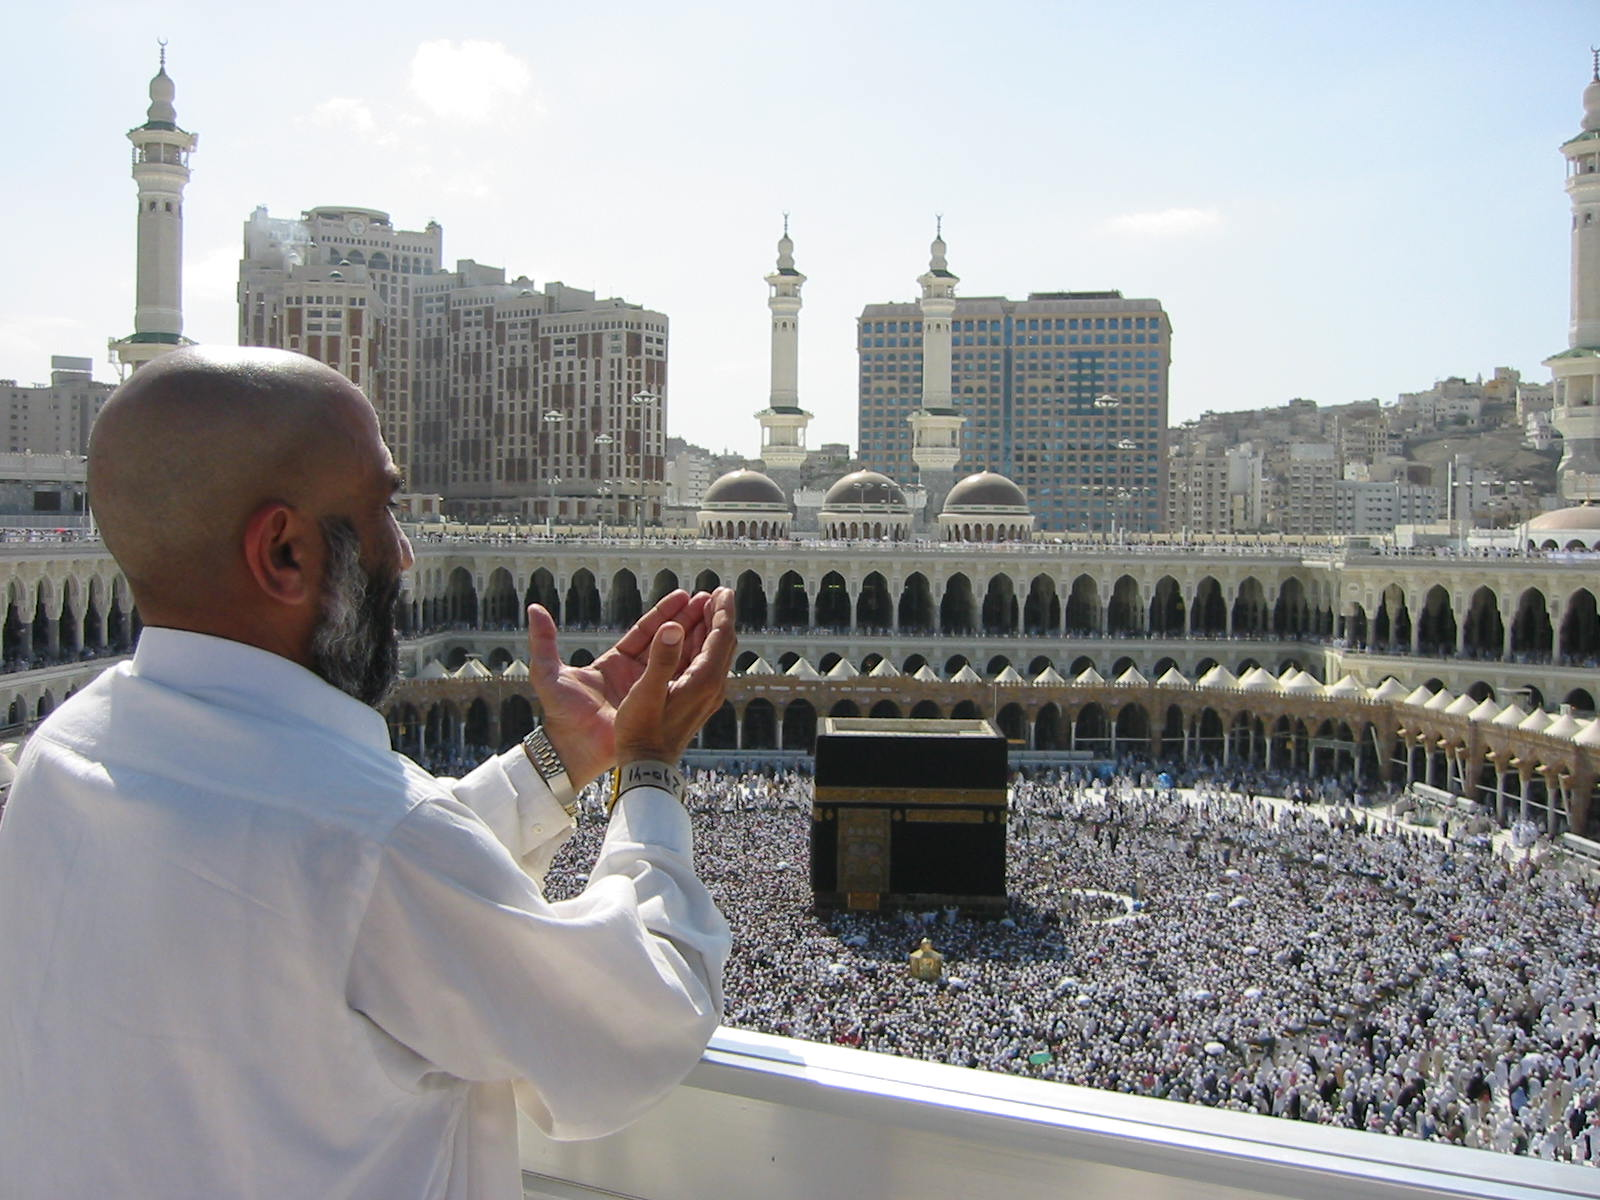 Muslims at haj are anxious about Trump's policies towards them